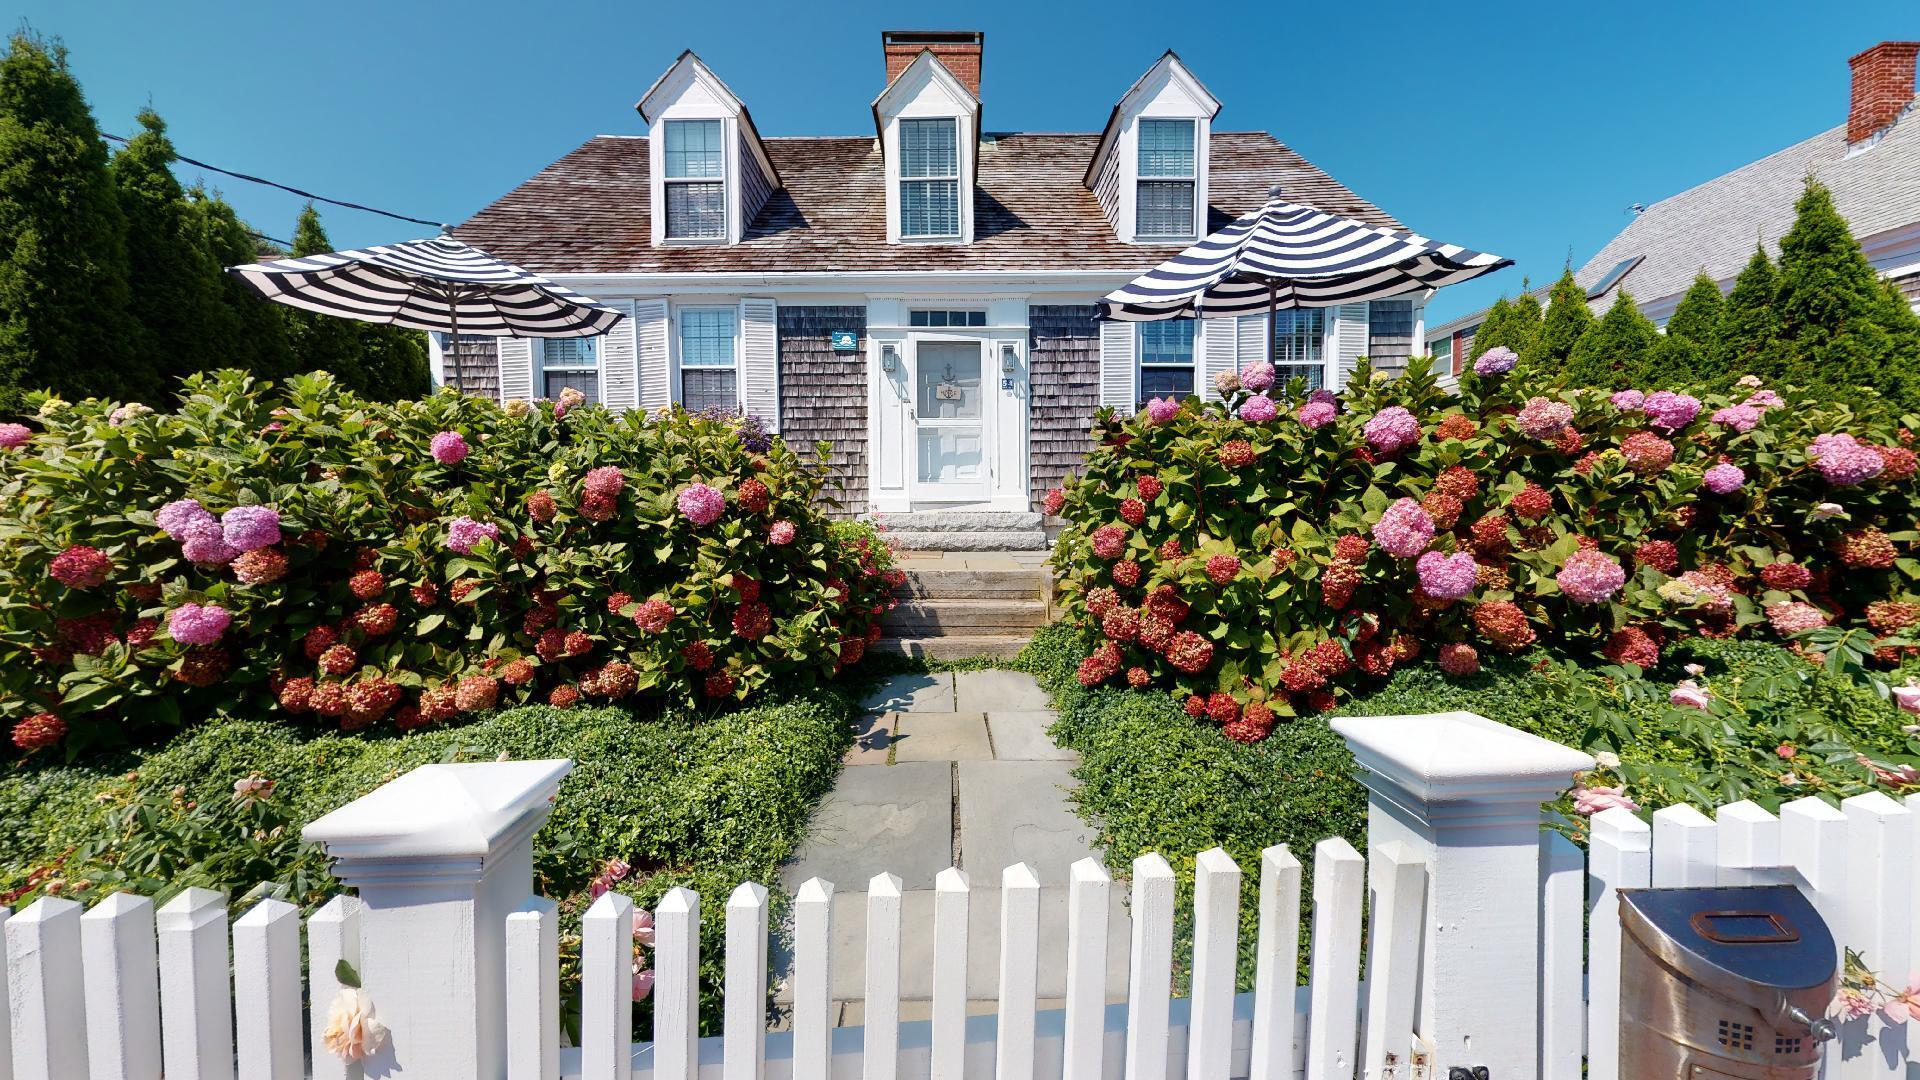 54 Commercial Street, Provincetown, MA photo 1